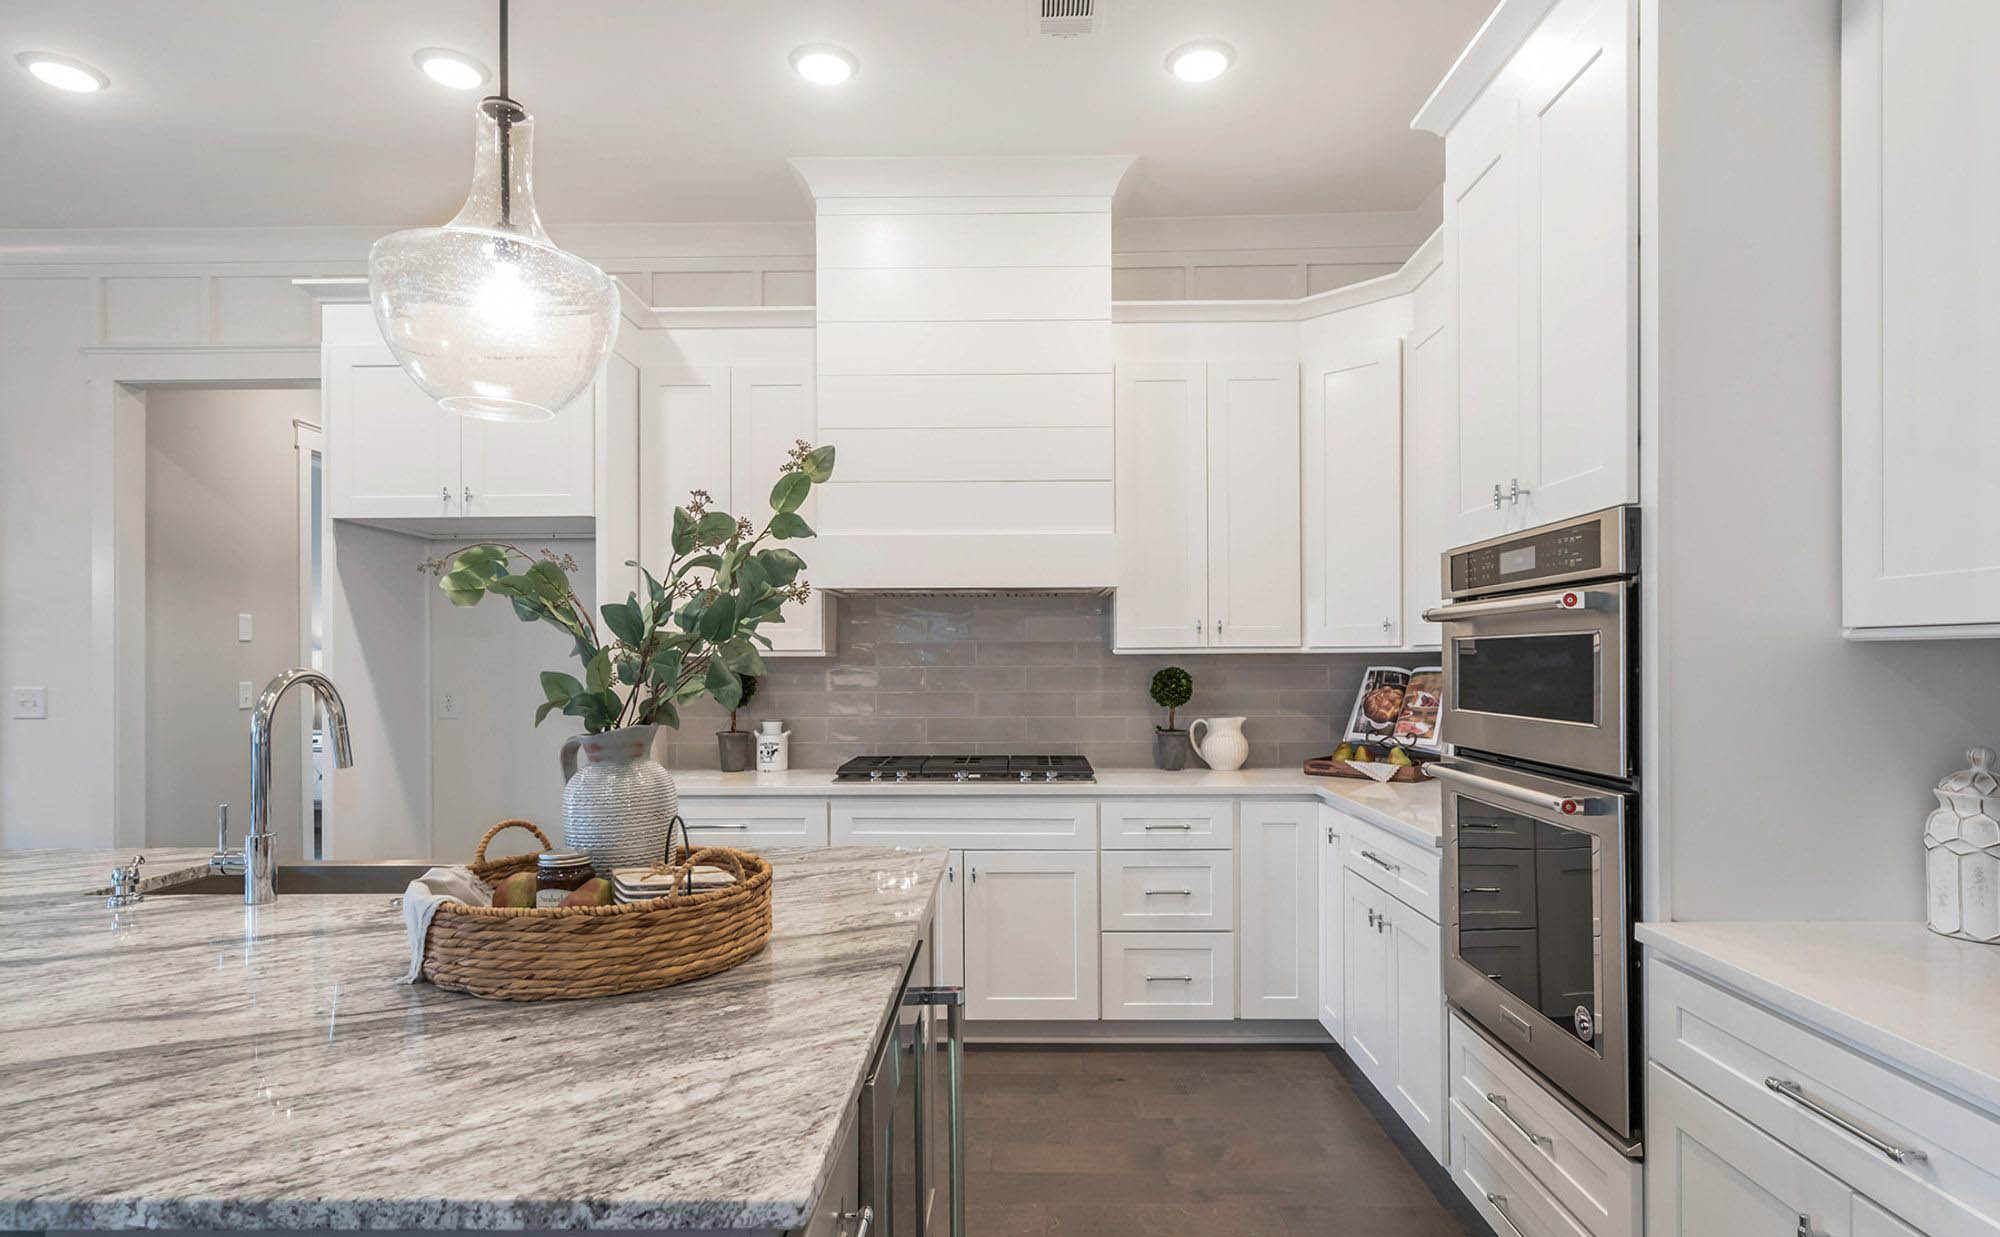 Gray and white granite countertops with white shaker style cabinets and a light gray subway backsplash tile.